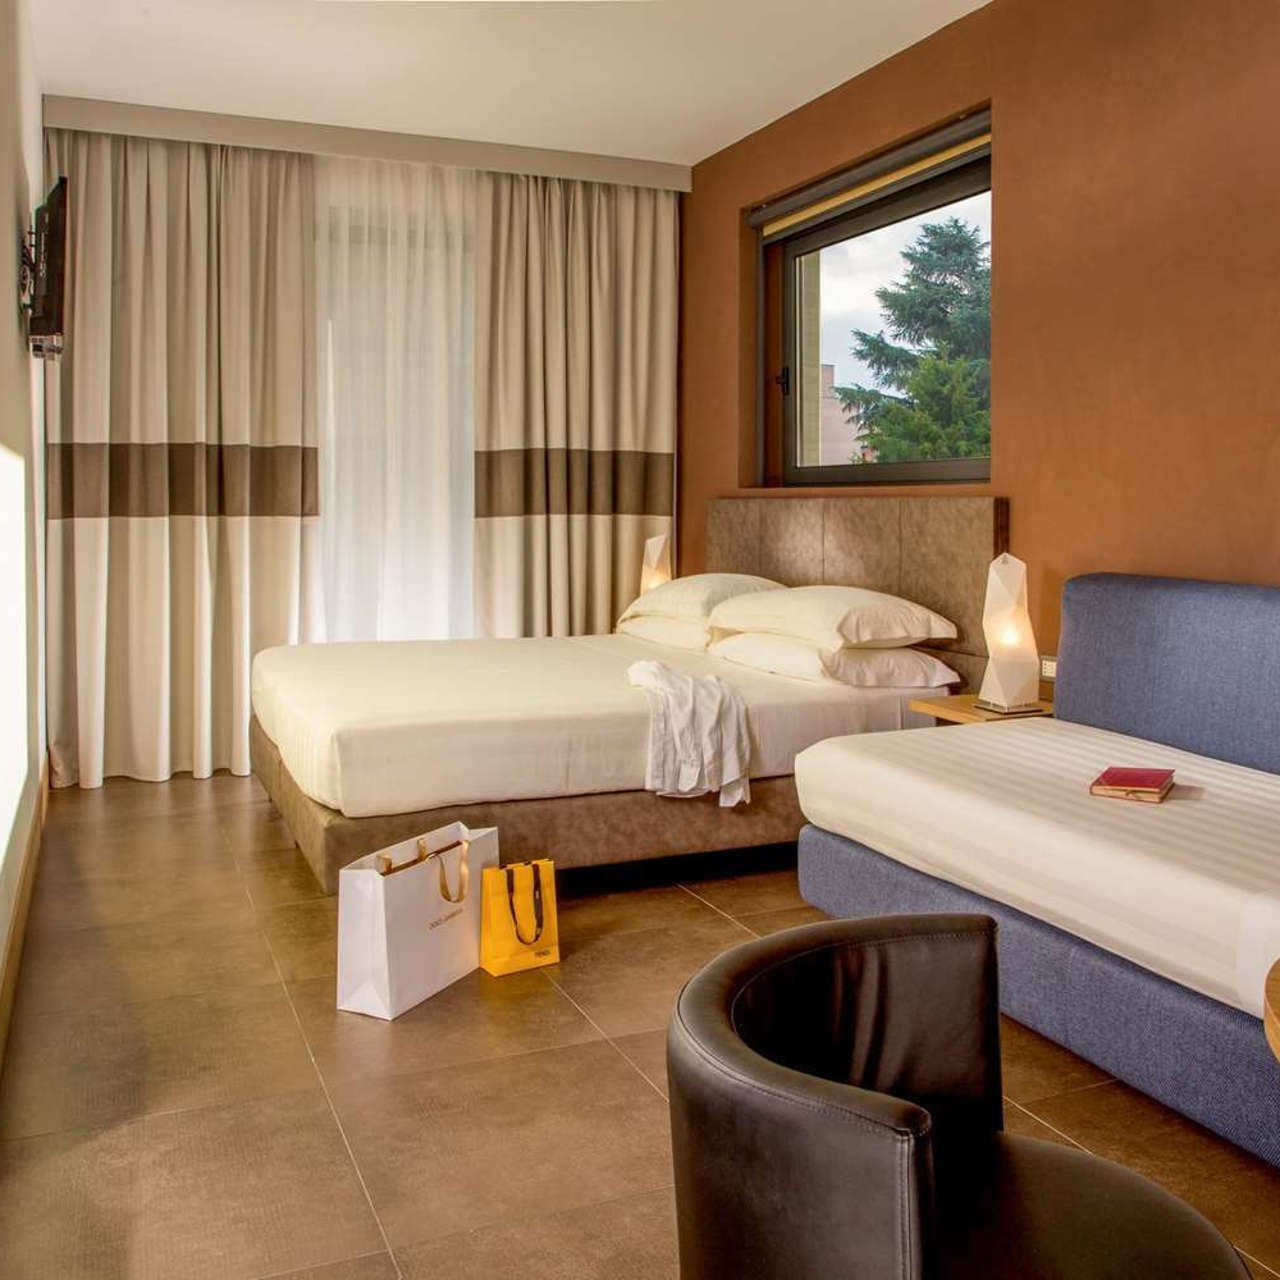 Hotel Best Western Plus Spring House Rome Lazio At Hrs With Free Services